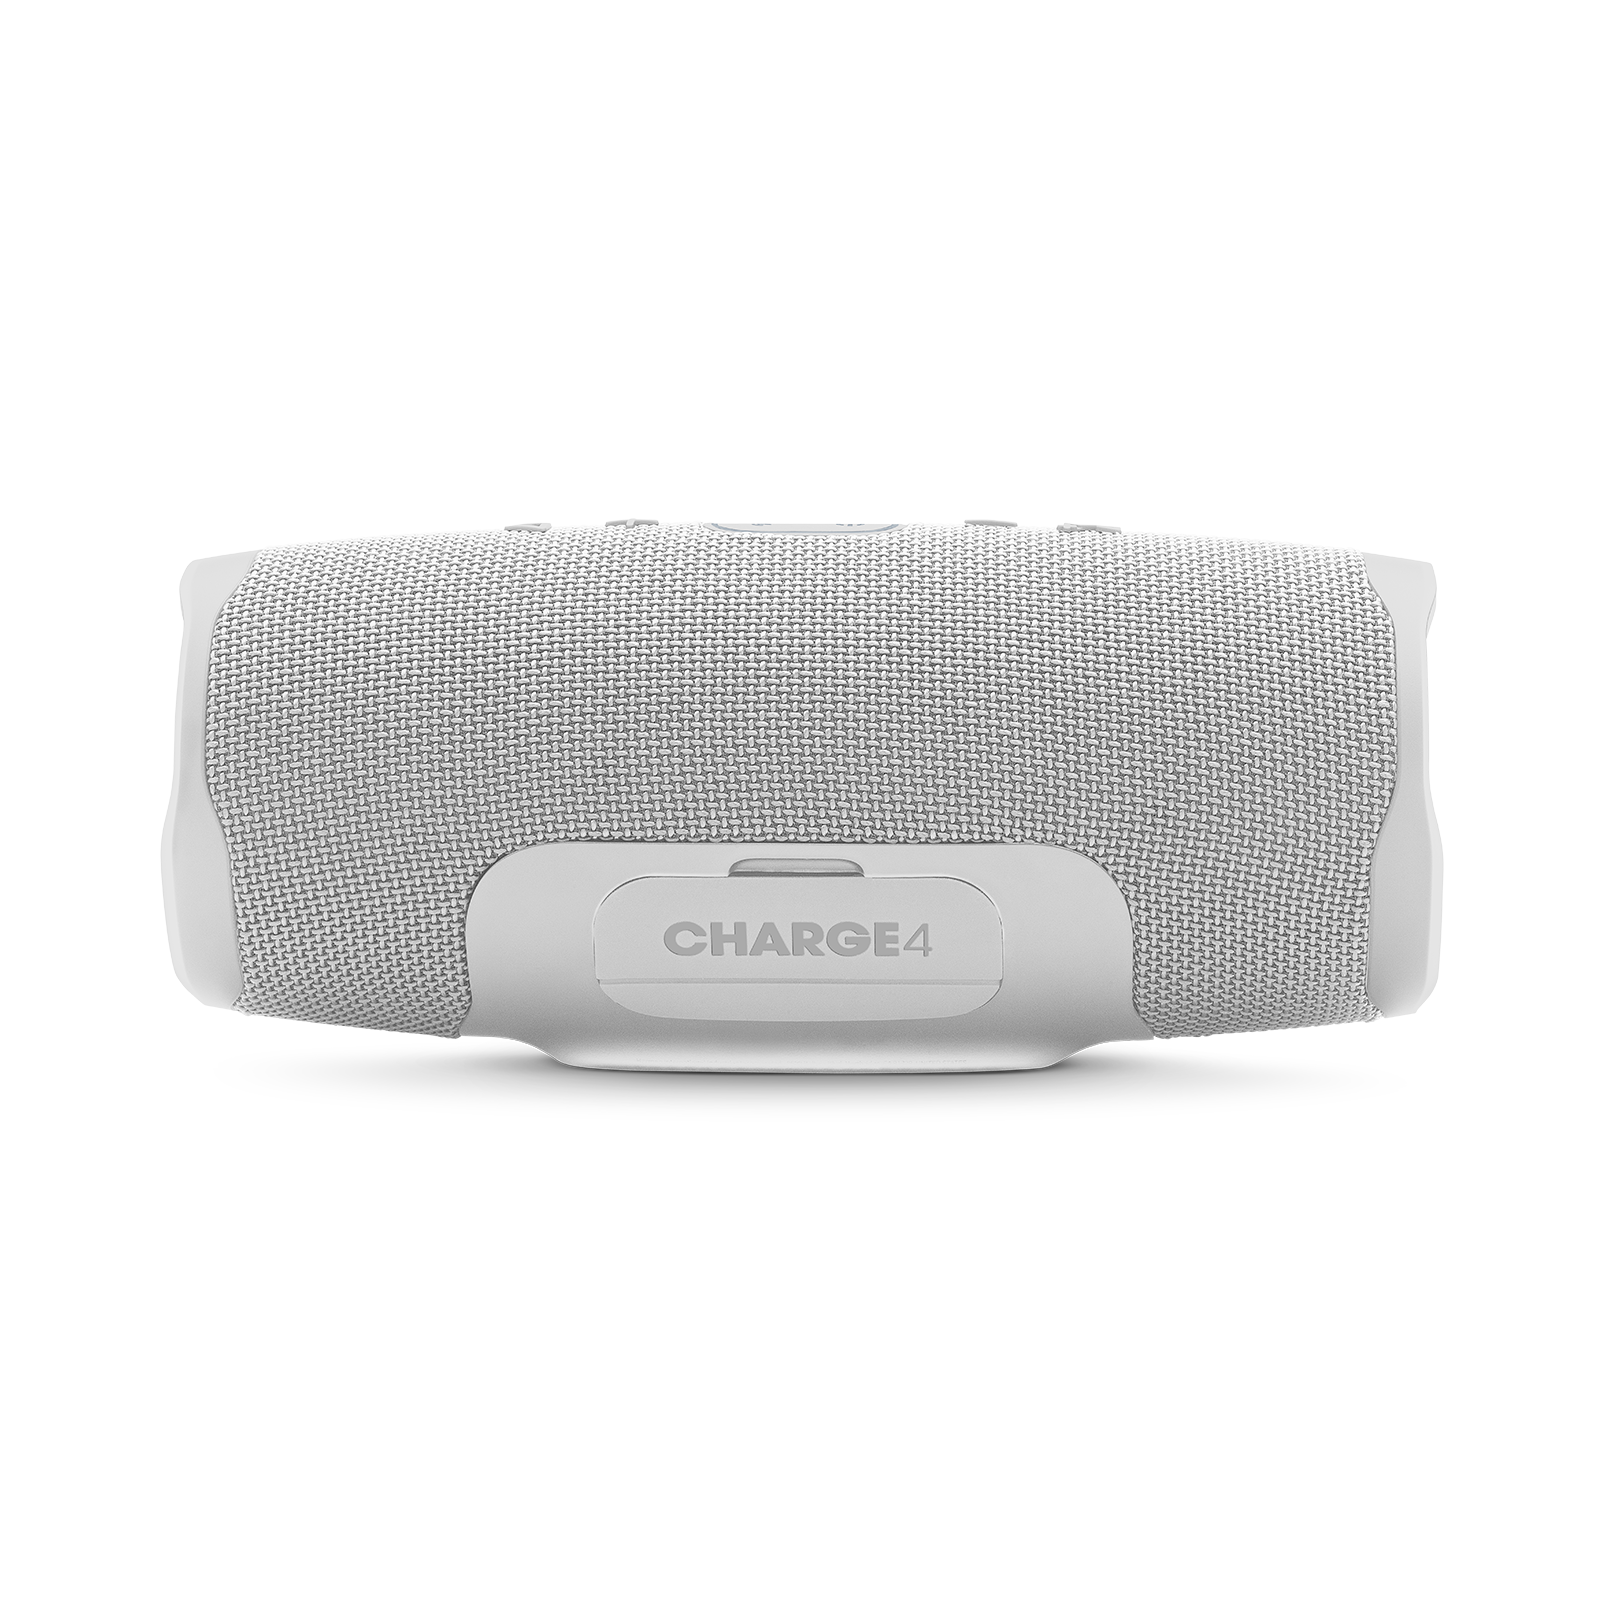 JBL Charge 4 - White - Portable Bluetooth speaker - Back